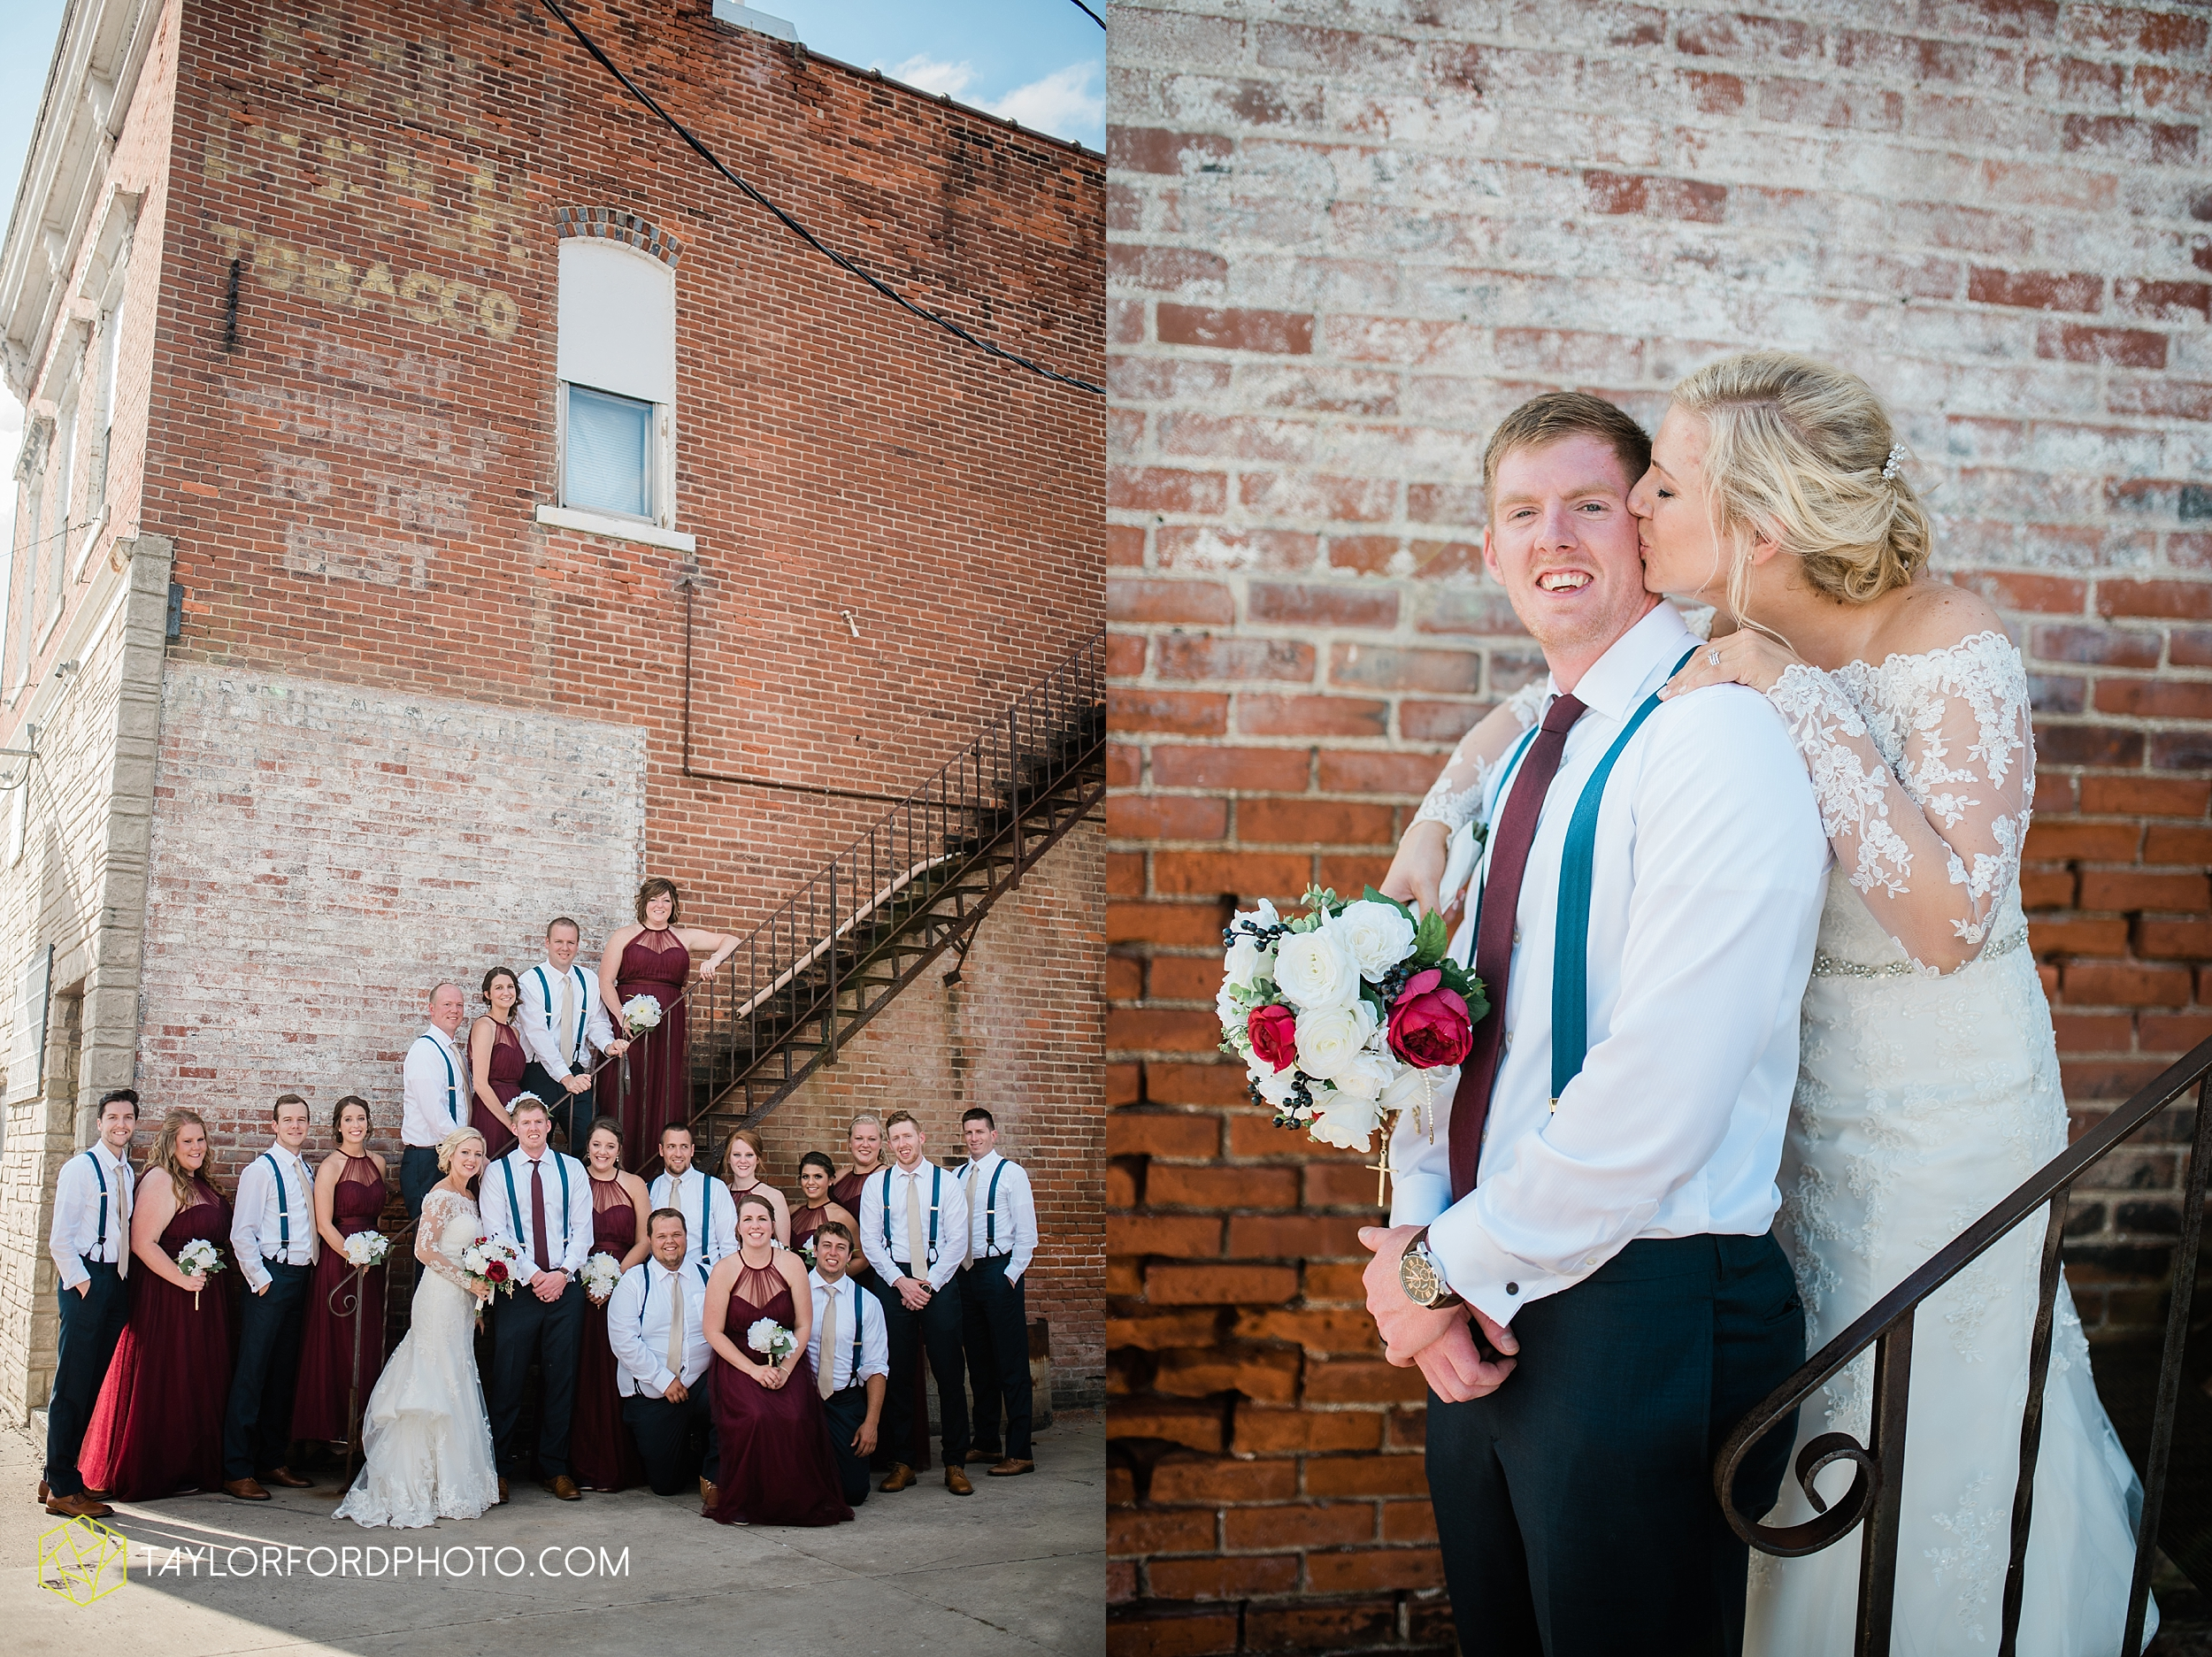 gayle-rayman-mike-steele-ottoville-ohio-wedding-immaculate-conception-parish-center-wedding-sycamore-lake-winery-wannamachers-photographer-taylor-ford-photography_0430.jpg